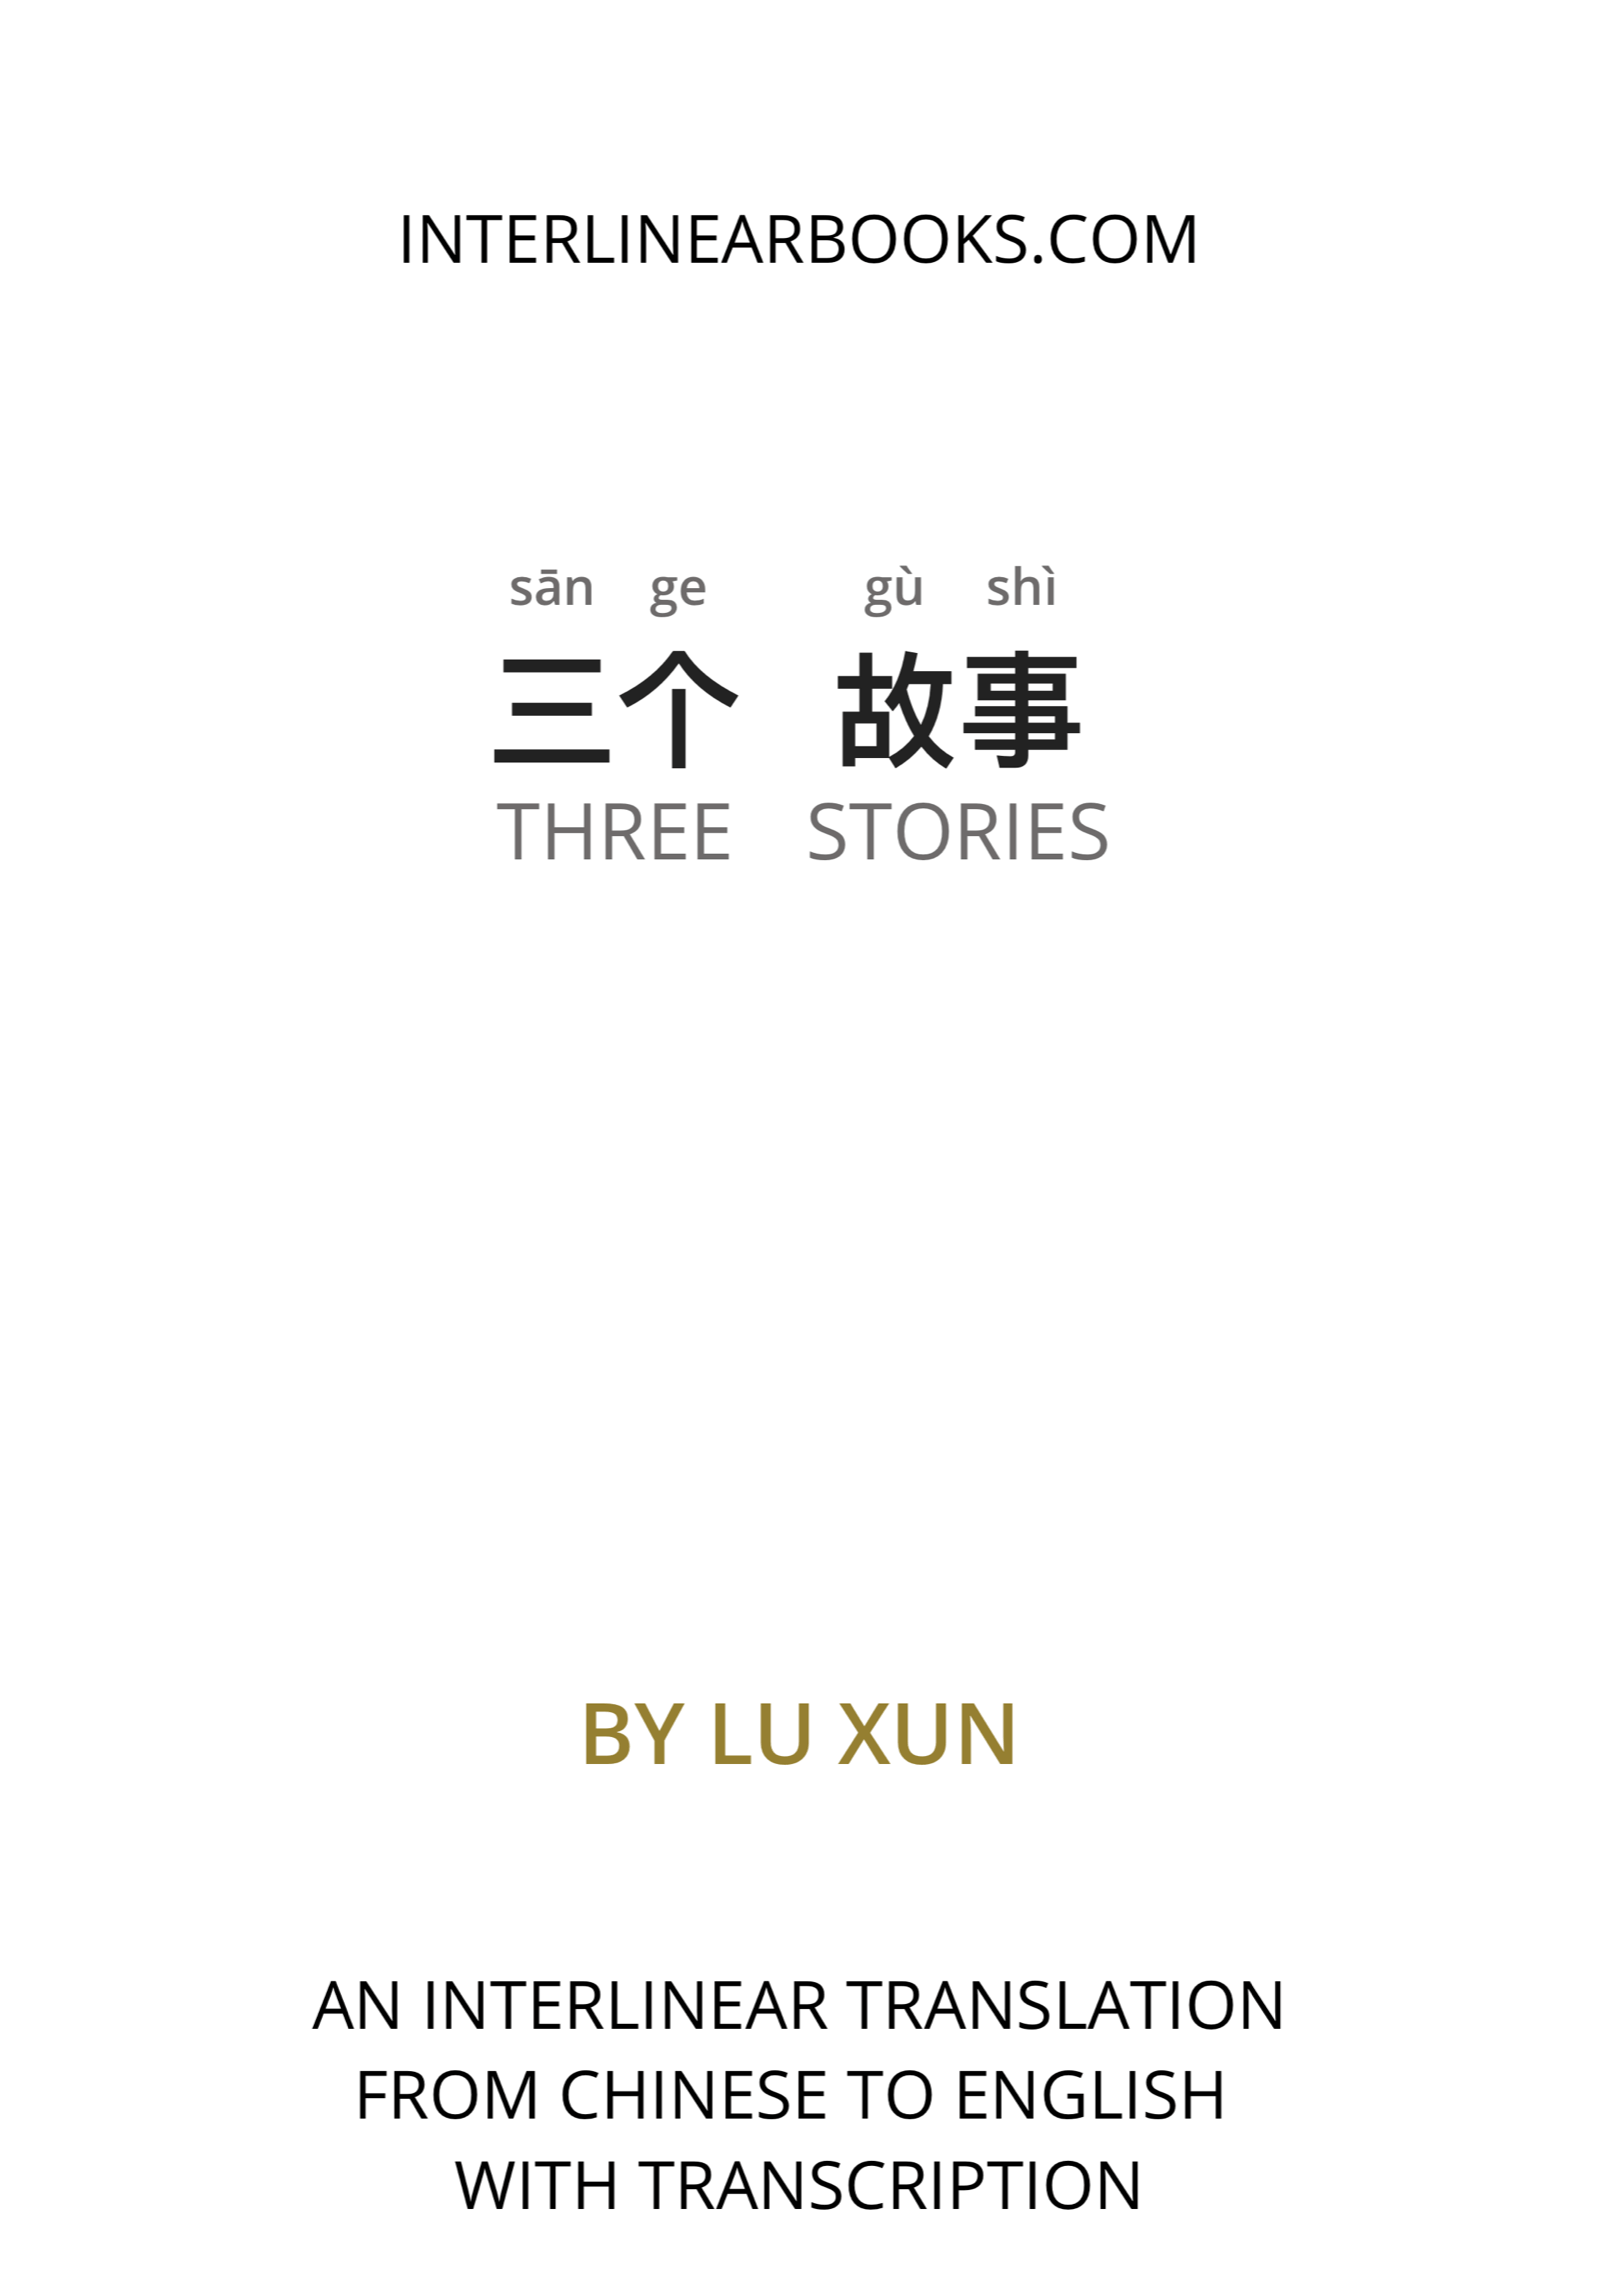 Chinese book: 三个故事ٍ / Three Stories